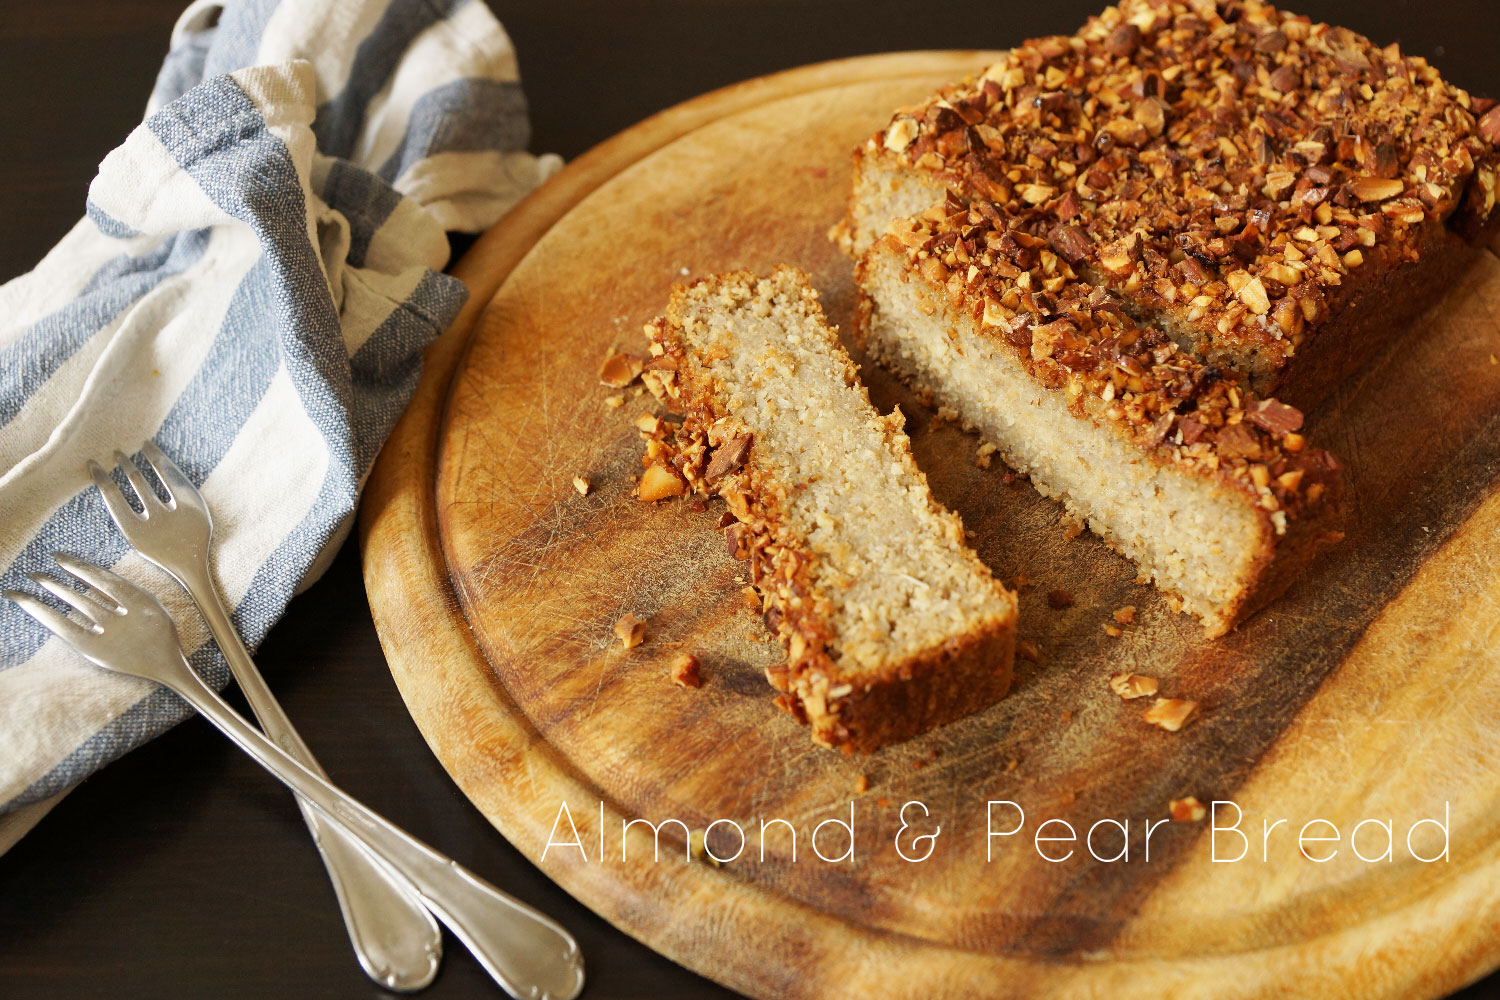 Almond and Pear Bread